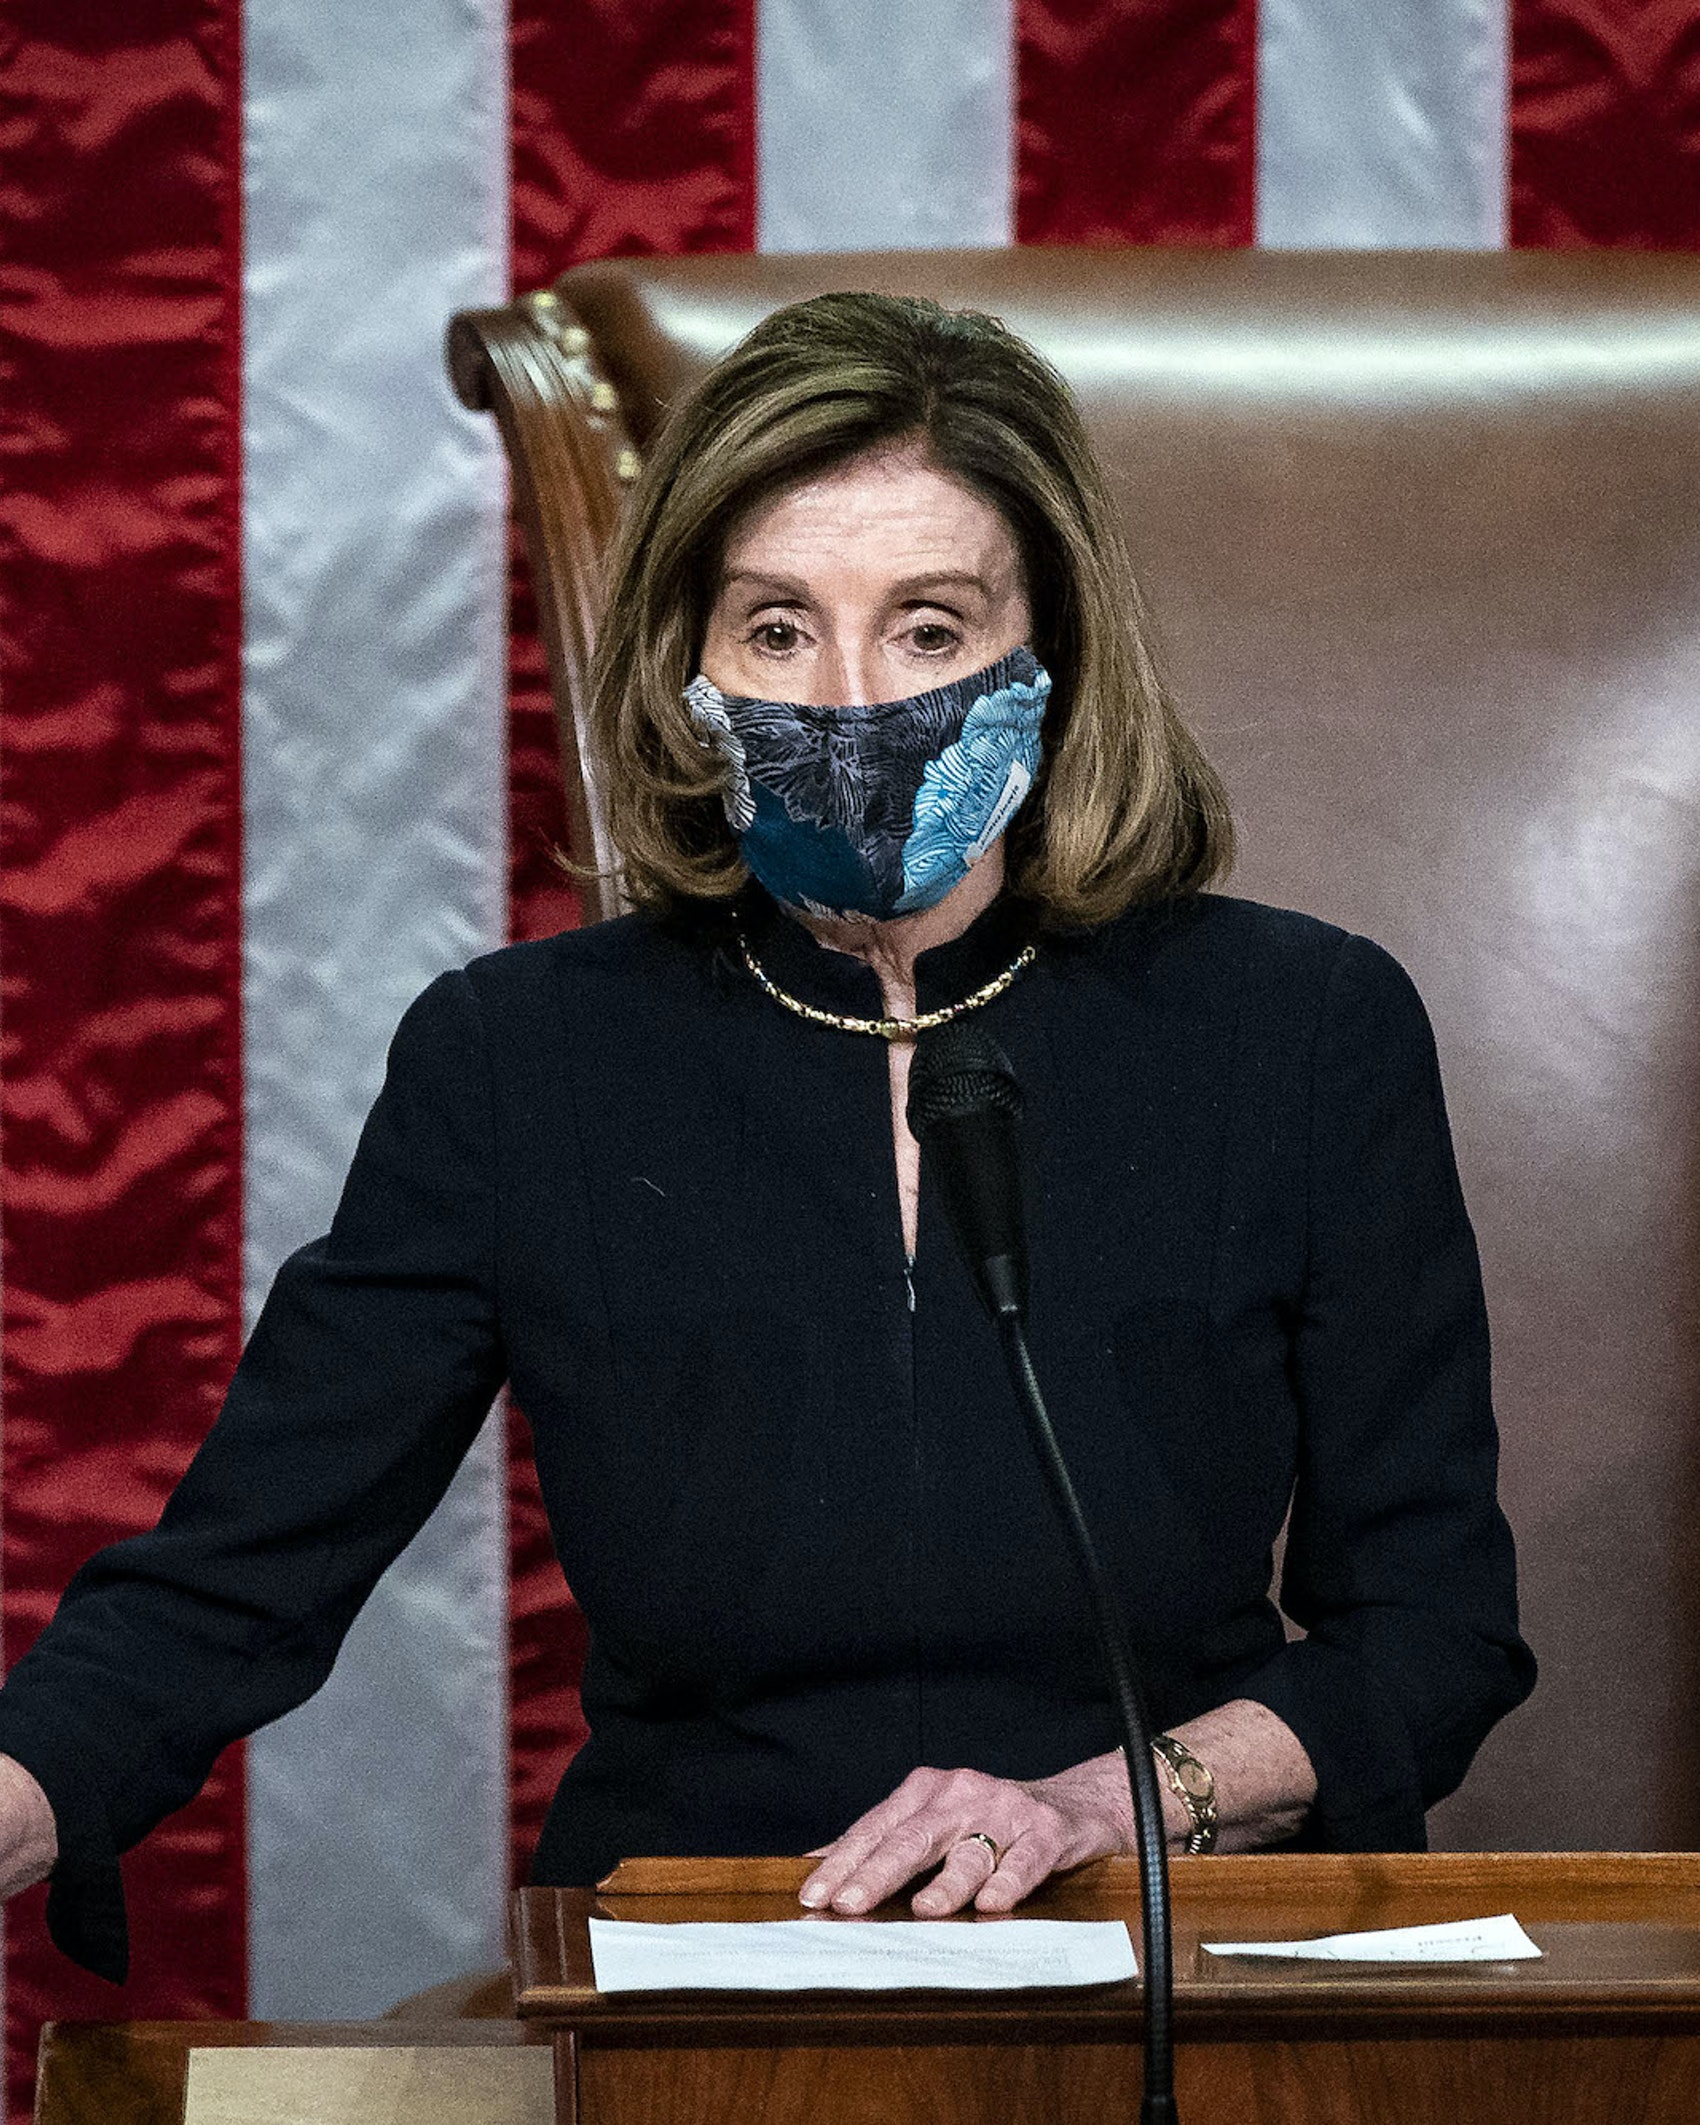 U.S. House Speaker Nancy Pelosi, a Democrat from California, wears a protective mask while banging the Speaker's gavel on the floor of the House at the U.S. Capitol in Washington, D.C., U.S., on Wednesday, Jan. 13, 2021. President Donald Trump was impeached by the U.S. House on a single charge of incitement of insurrection for his role in a deadly riot by his supporters that left five dead and the Capitol ransacked, putting an indelible stain on his legacy with only a week left in his term. Photographer: Al Drago/Bloomberg